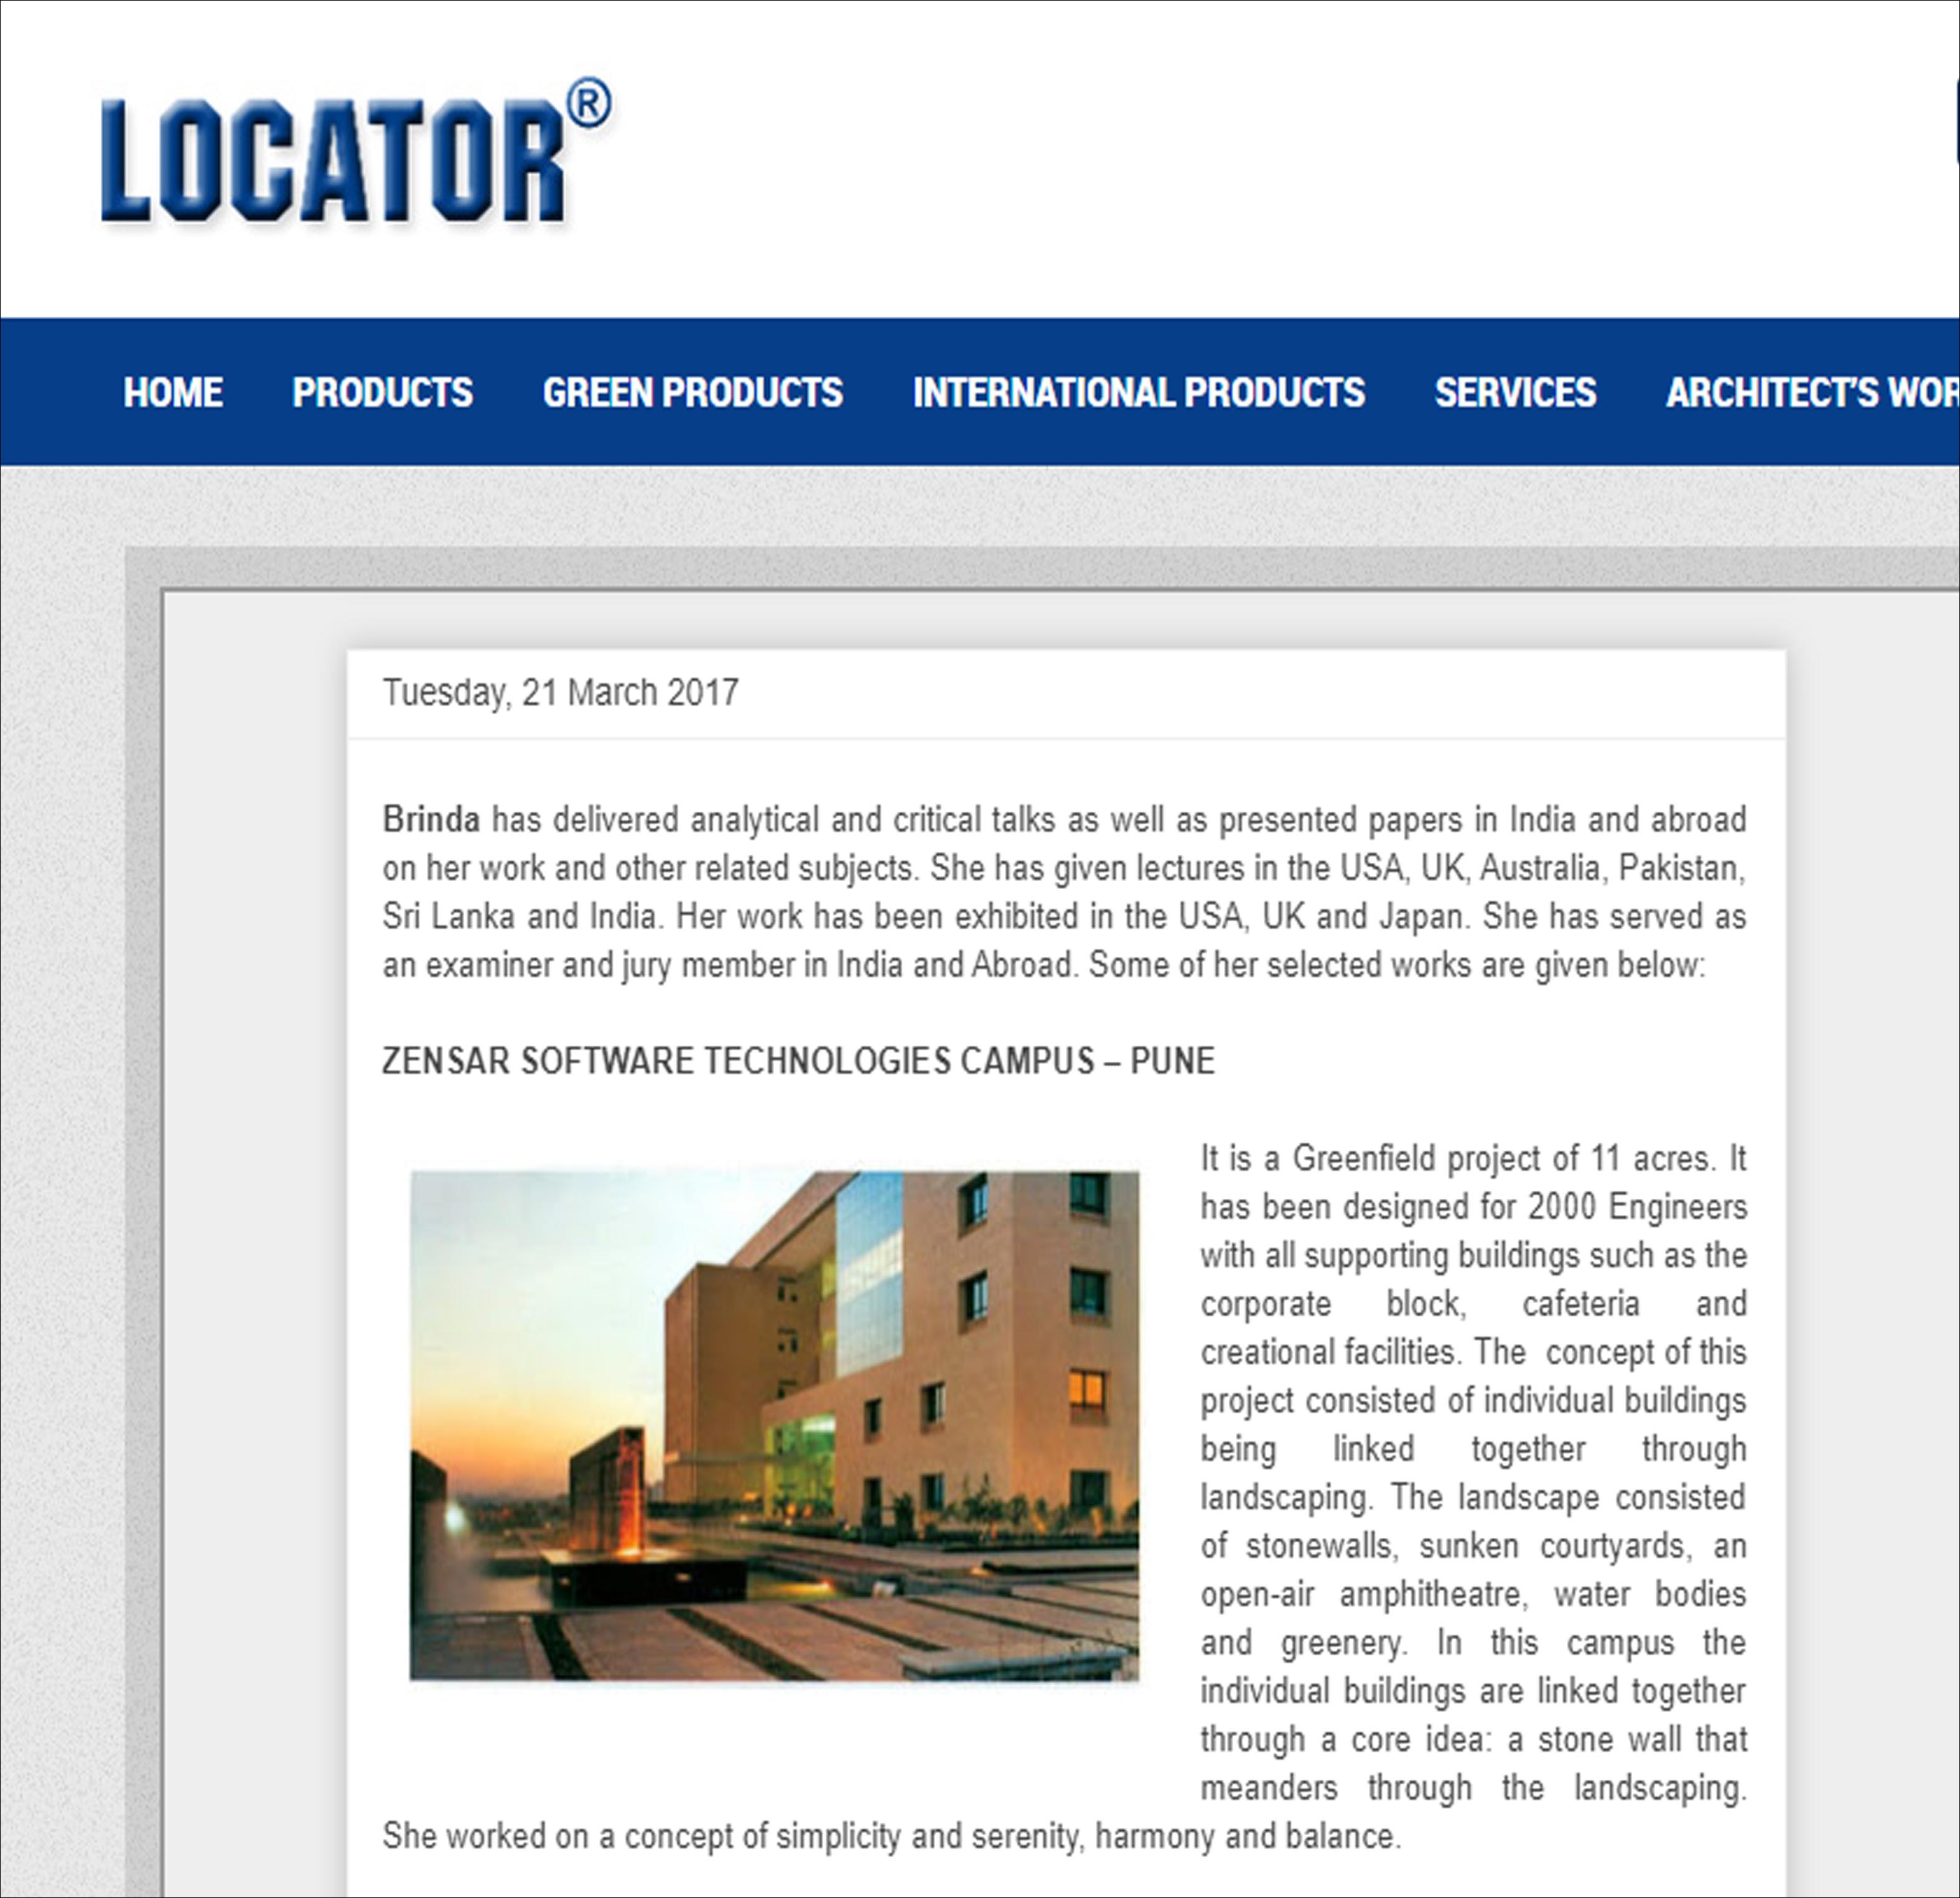 Locator India - on 21 March 2017